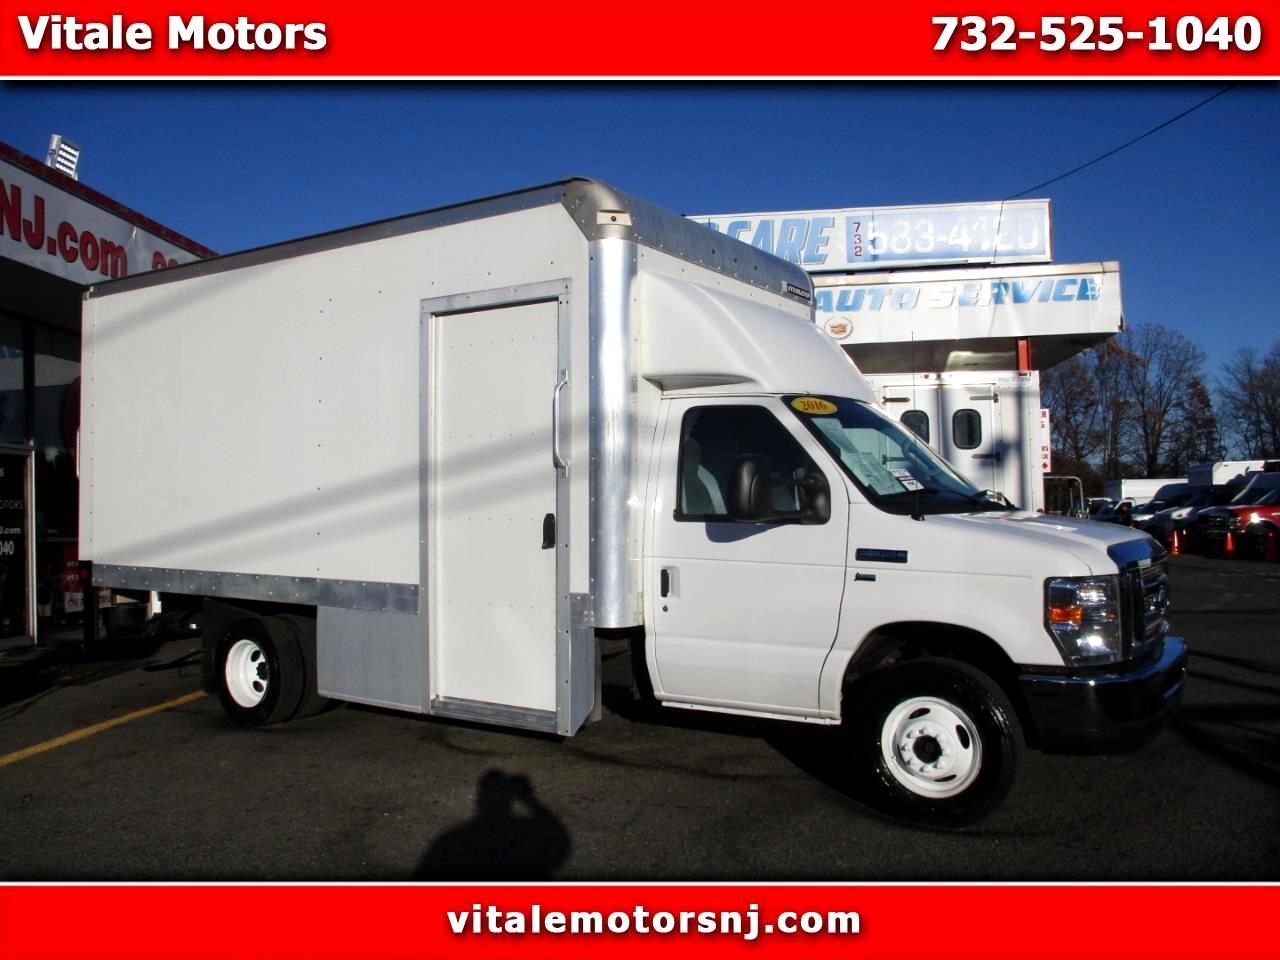 2016 Ford Econoline E-350 BOX TRUCK 16' W/ SIDE DOOR